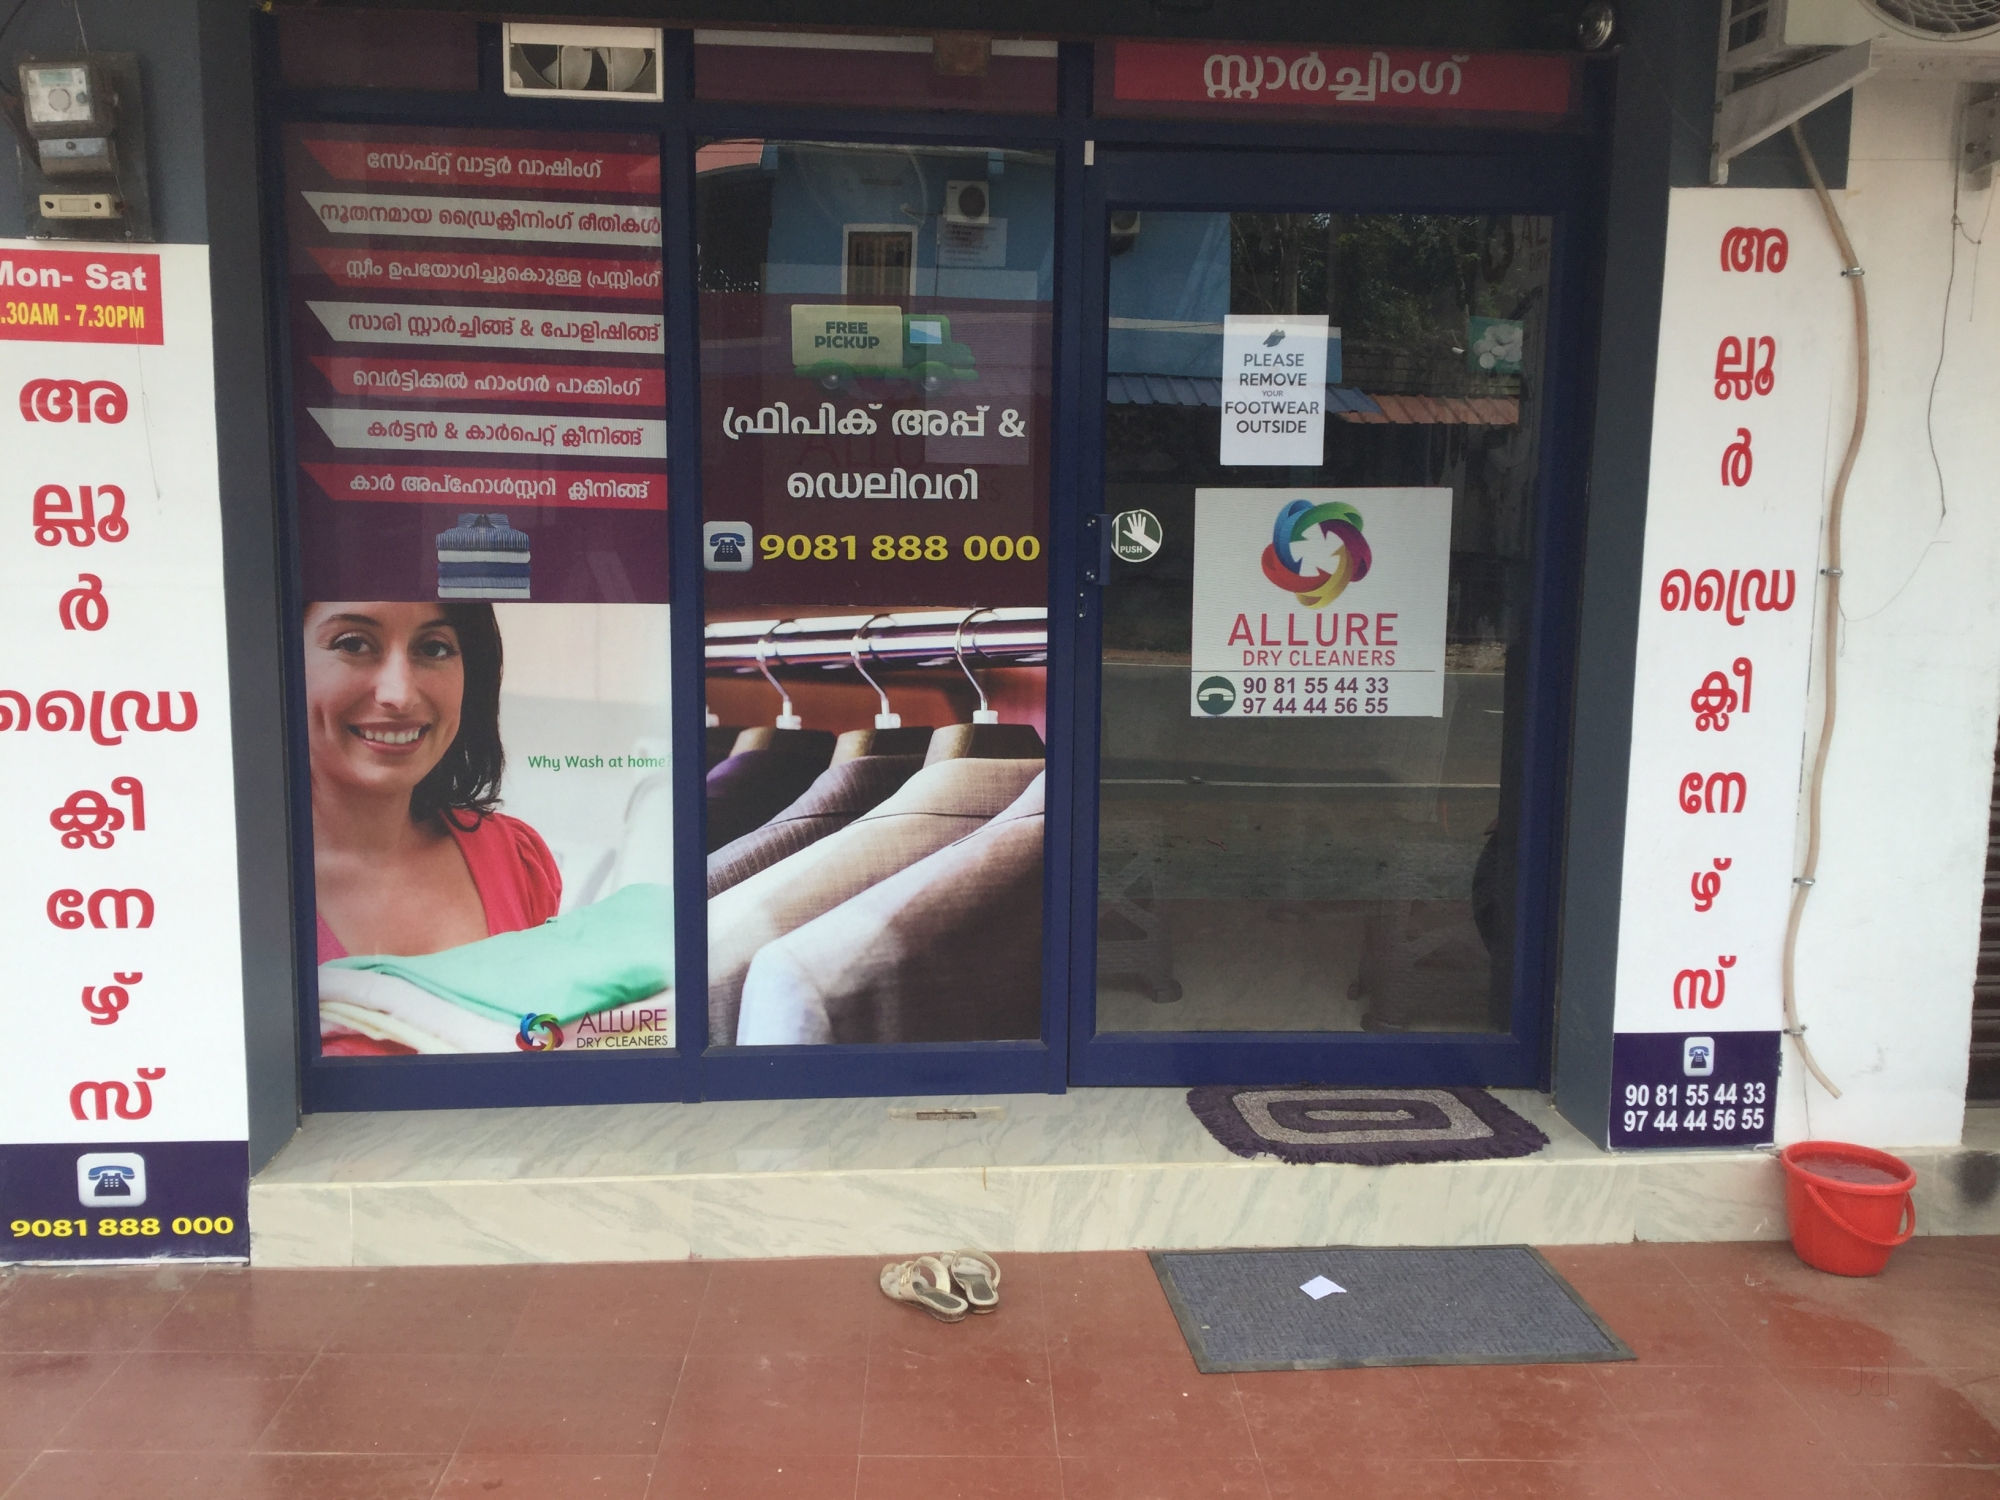 Allure DRY Cleaners, DRY CLEANING,  service in Pandalam, Pathanamthitta